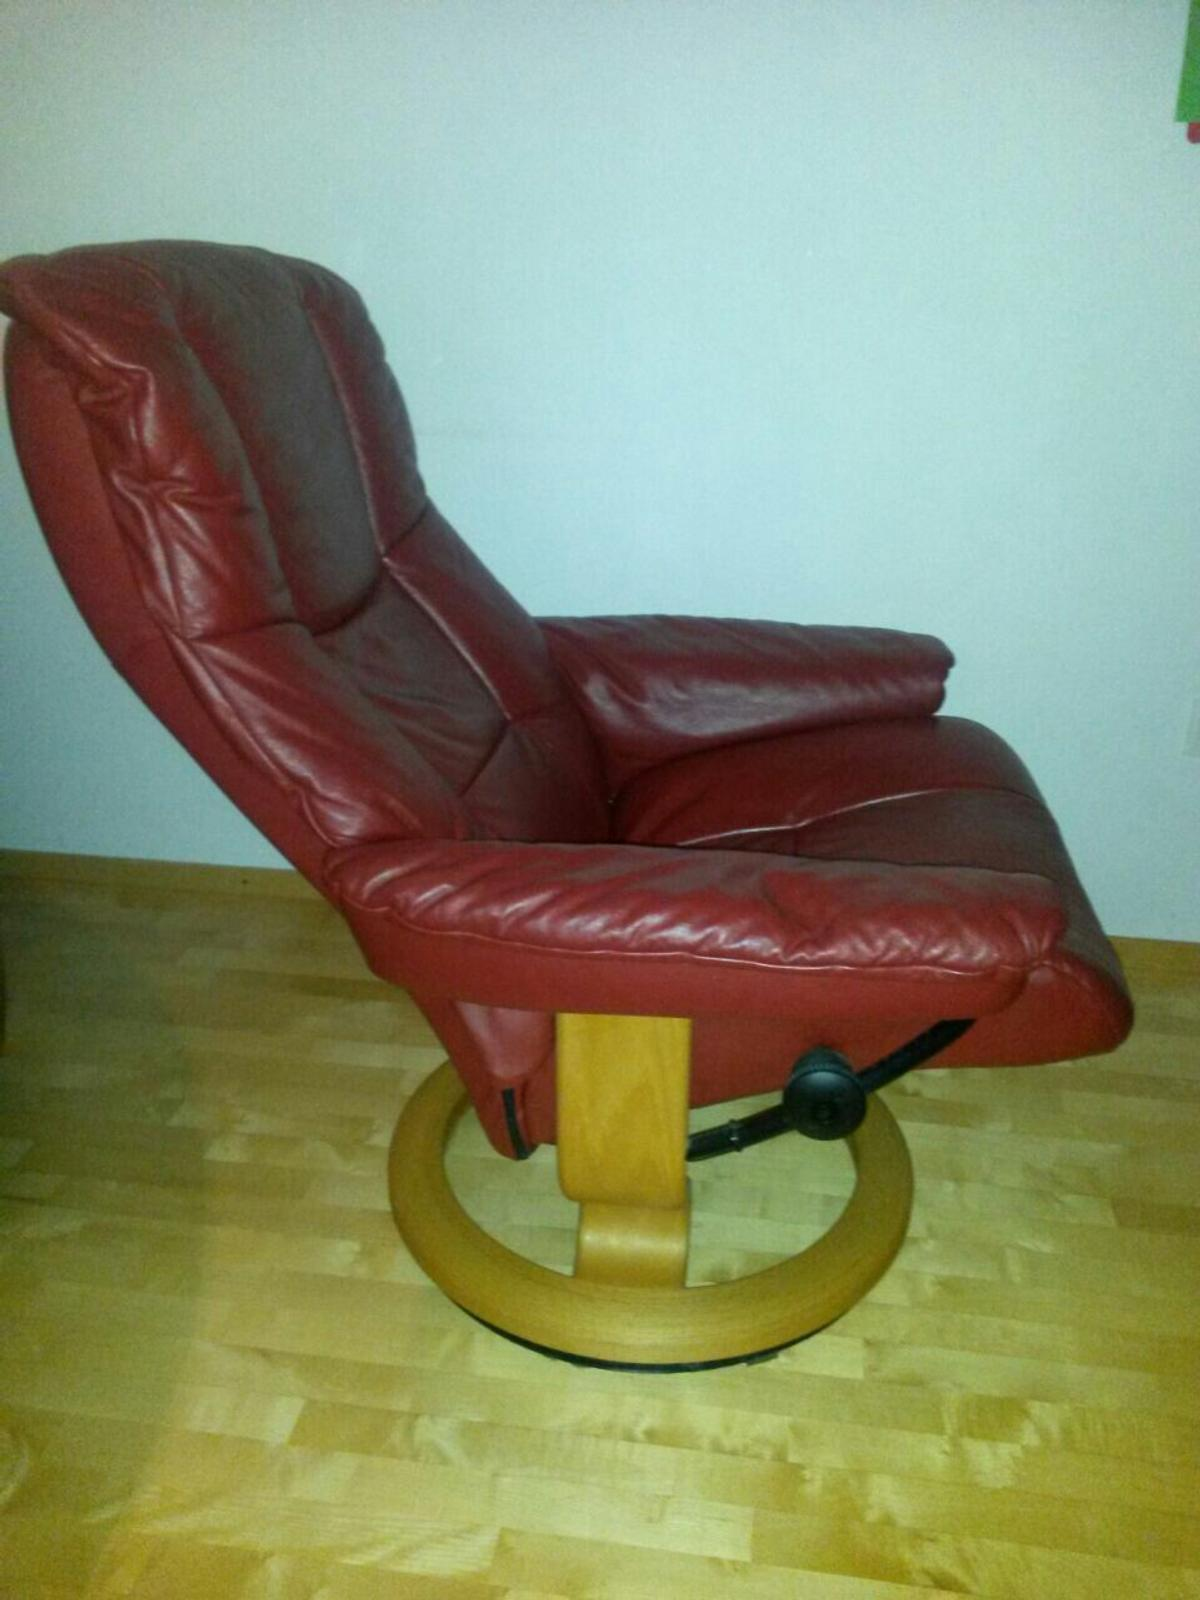 Papasan Sessel Höffner Stressless Sessel Gunstig Fabulous Stressless Sessel Gunstig With